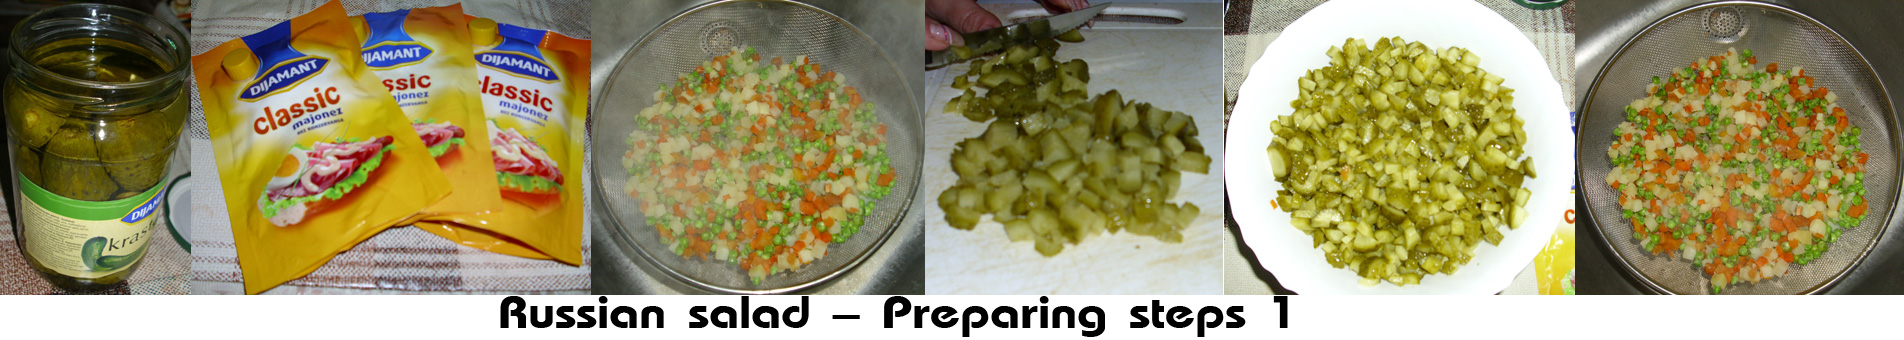 Russian alad preparing steps 1